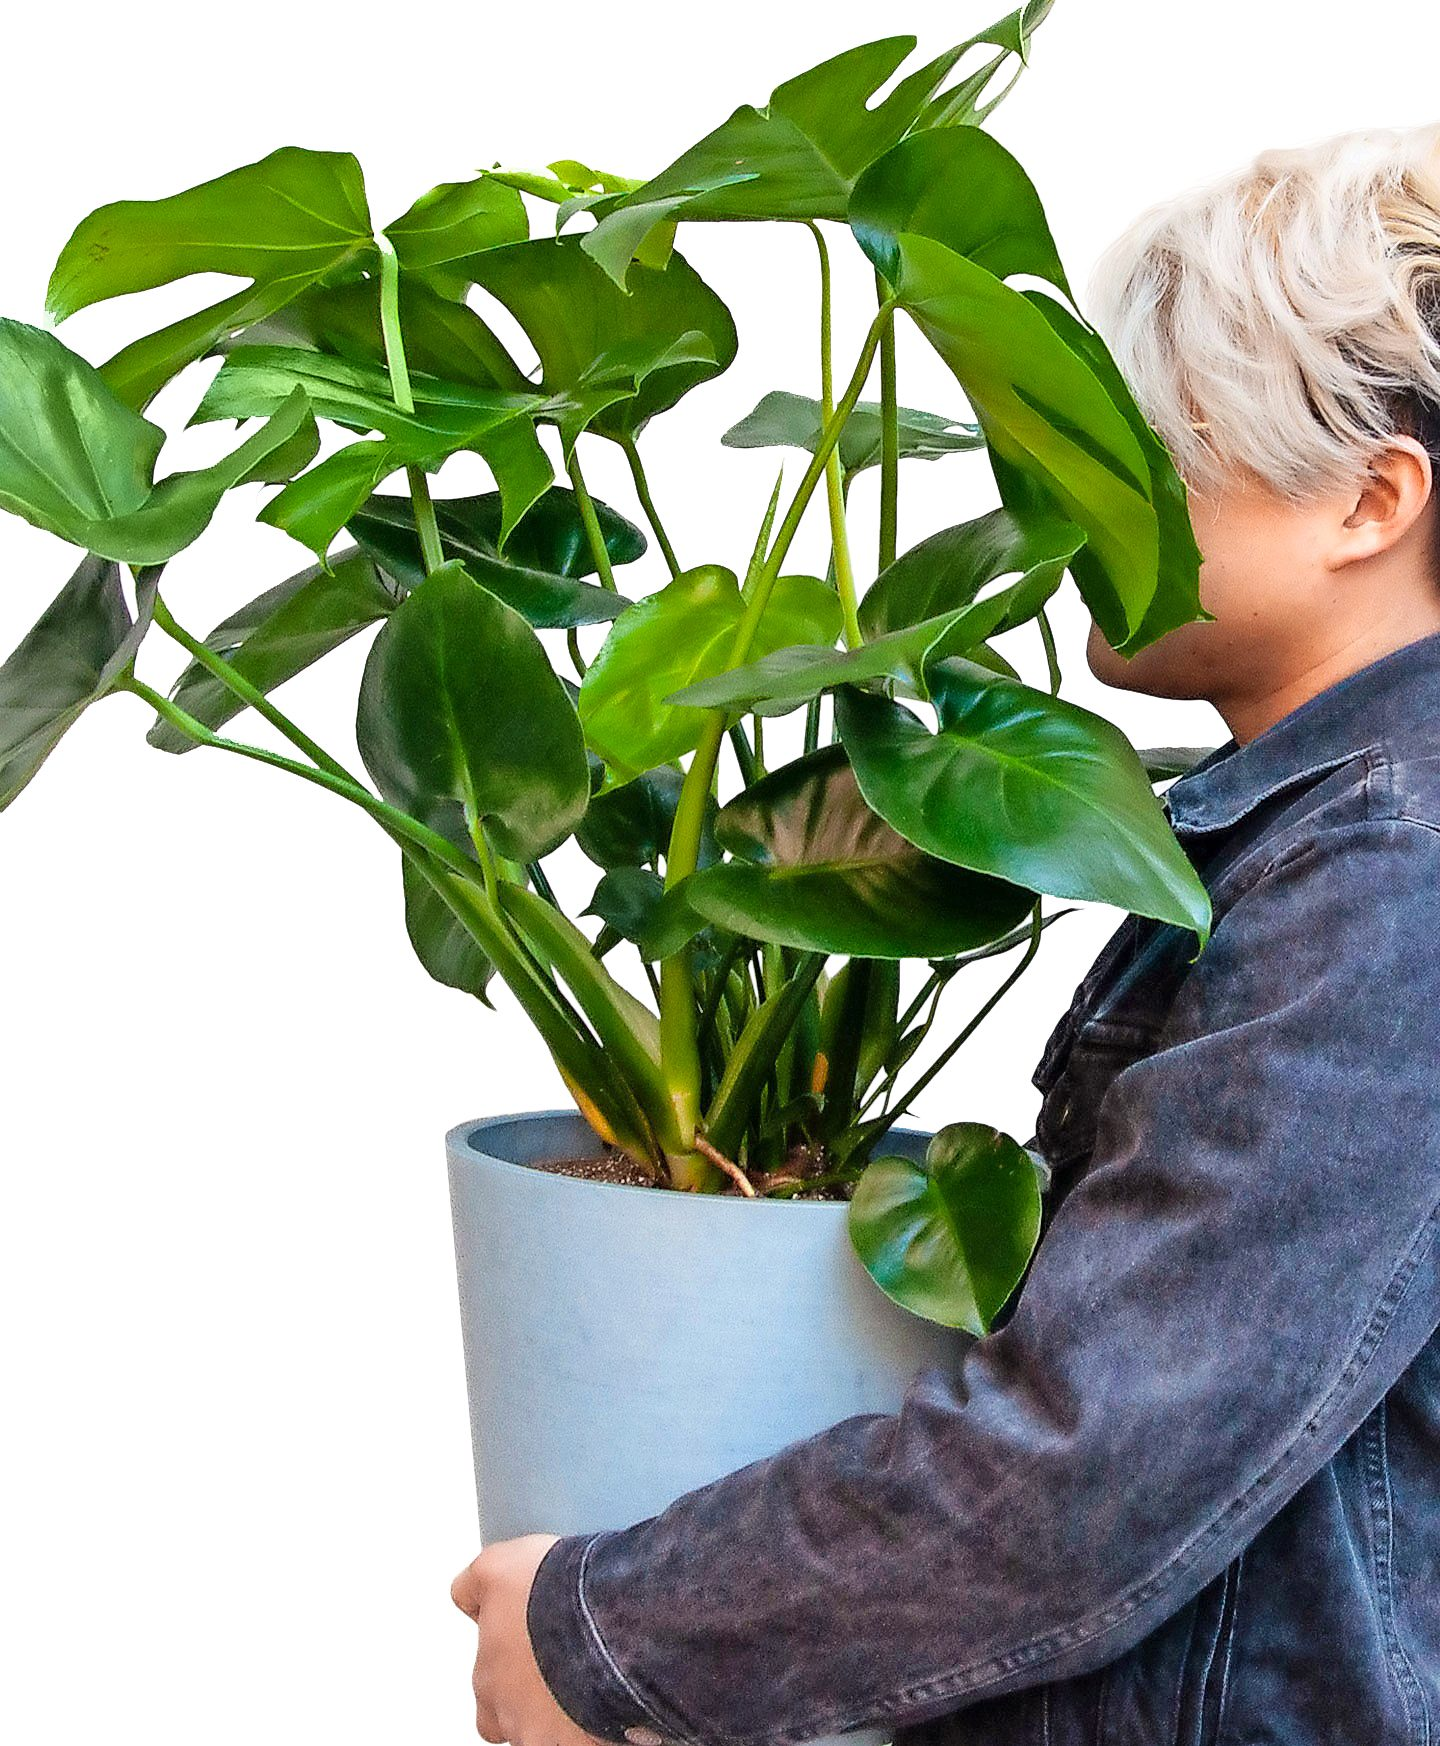 A person carries a large monstera plant.